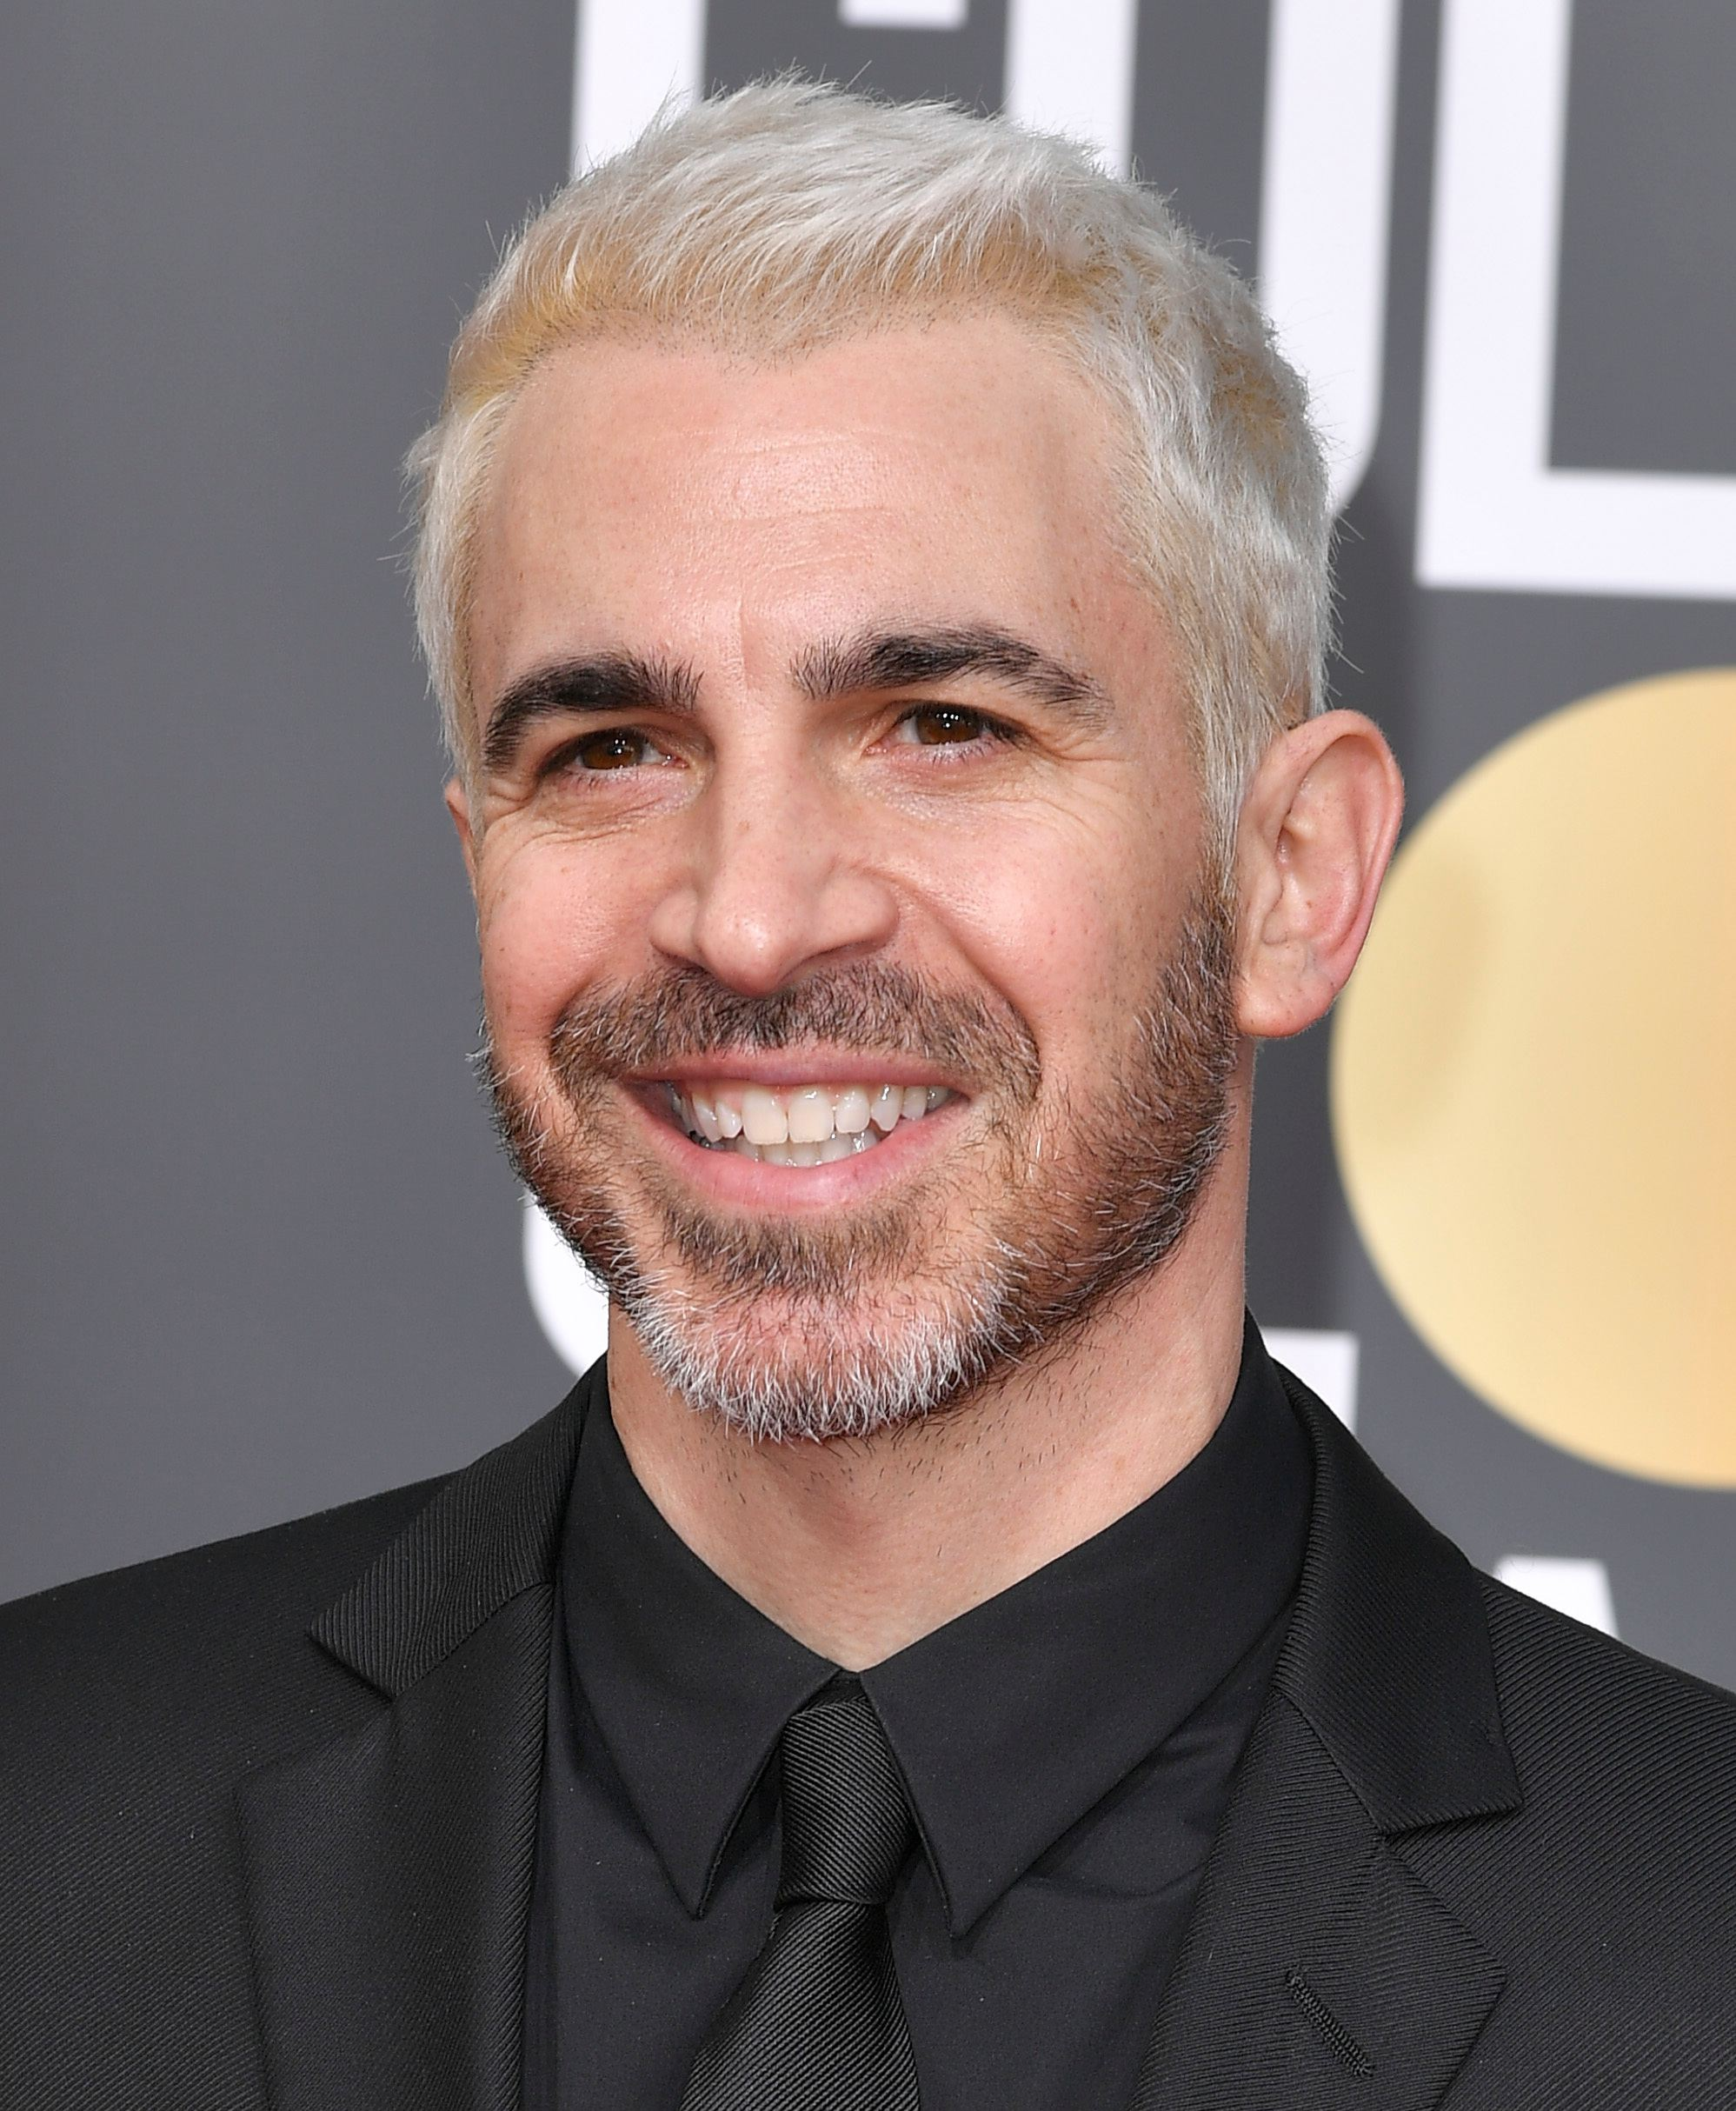 Golden Globes 2019: Close-up of Chris Messina with platinum blonde hair